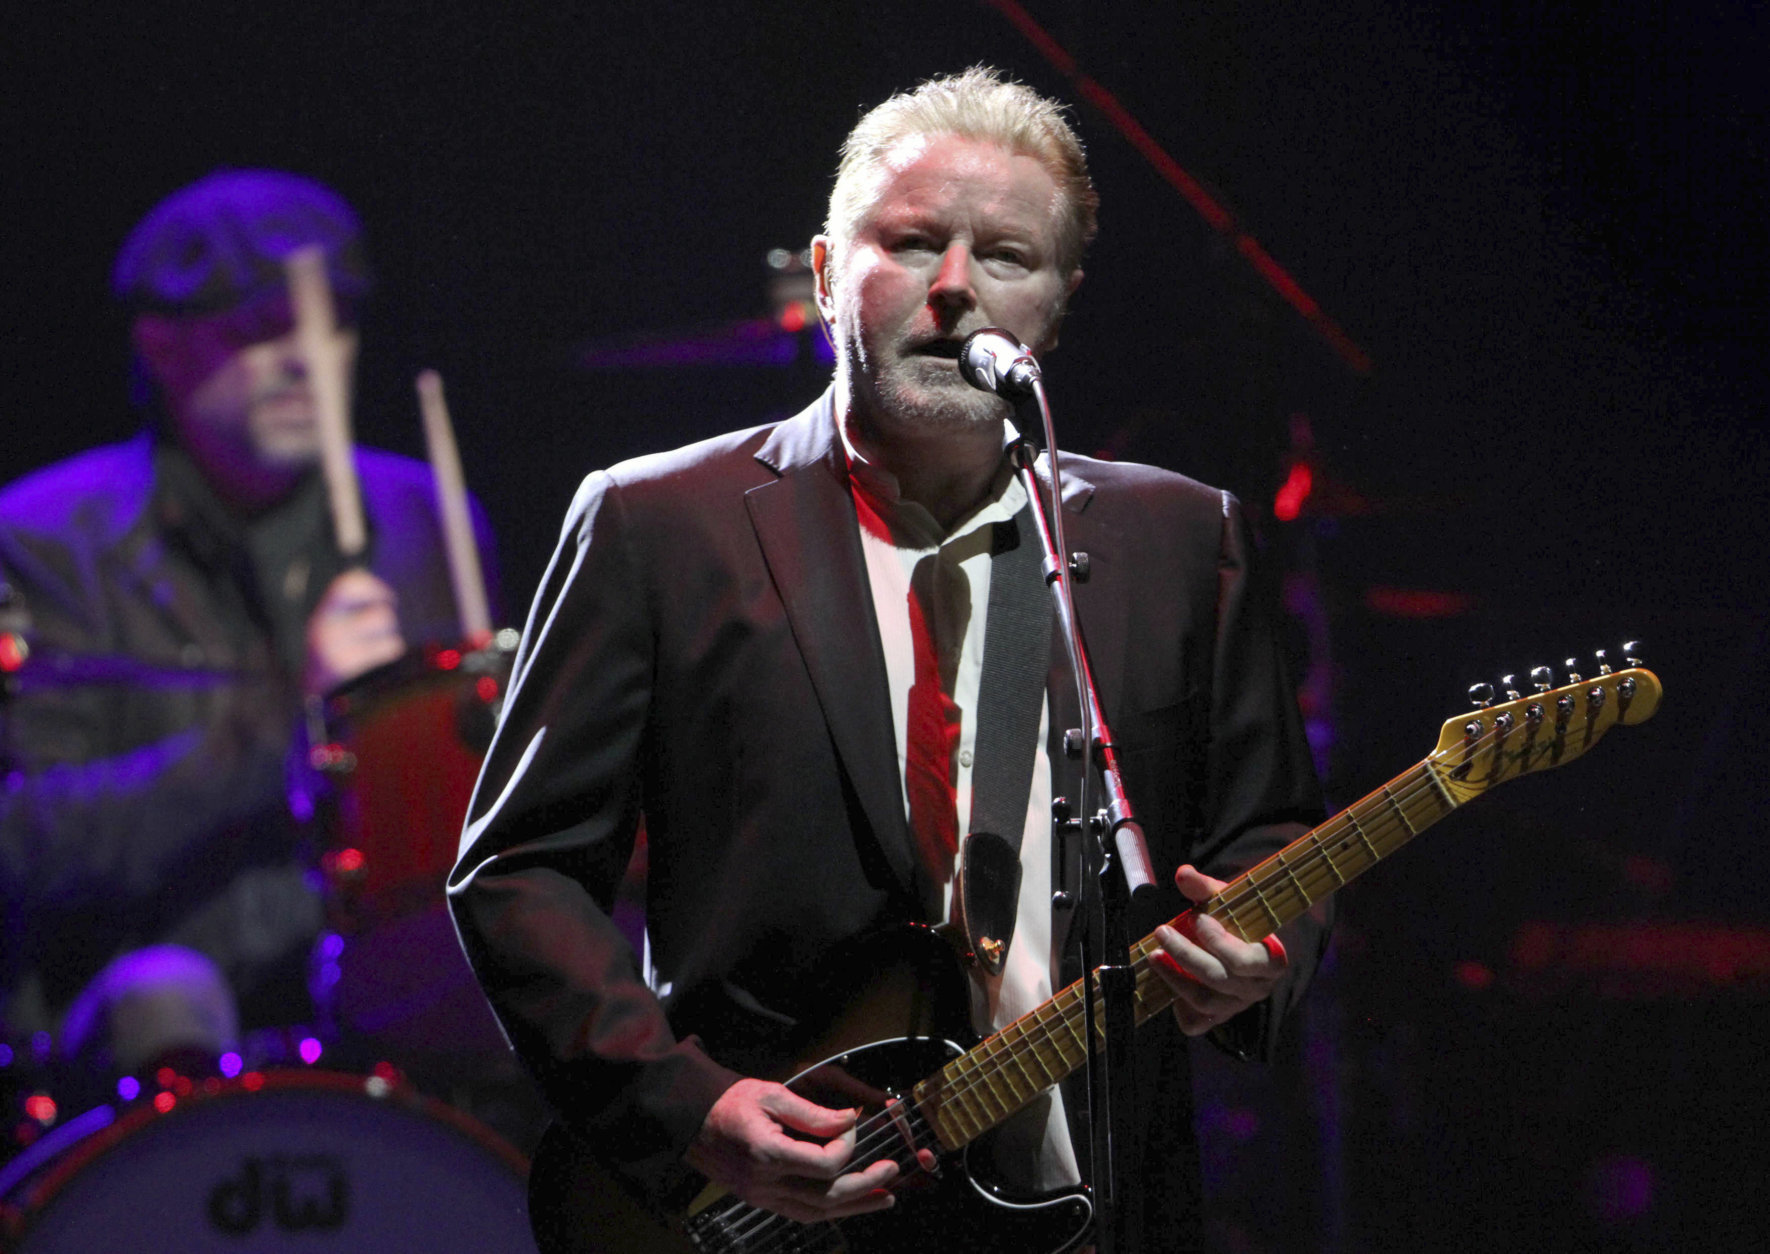 Don Henley of The Eagles performs at the Fox Theatre on Sunday, January 22, 2017, in Atlanta. (Photo by Robb Cohen/Invision/AP)